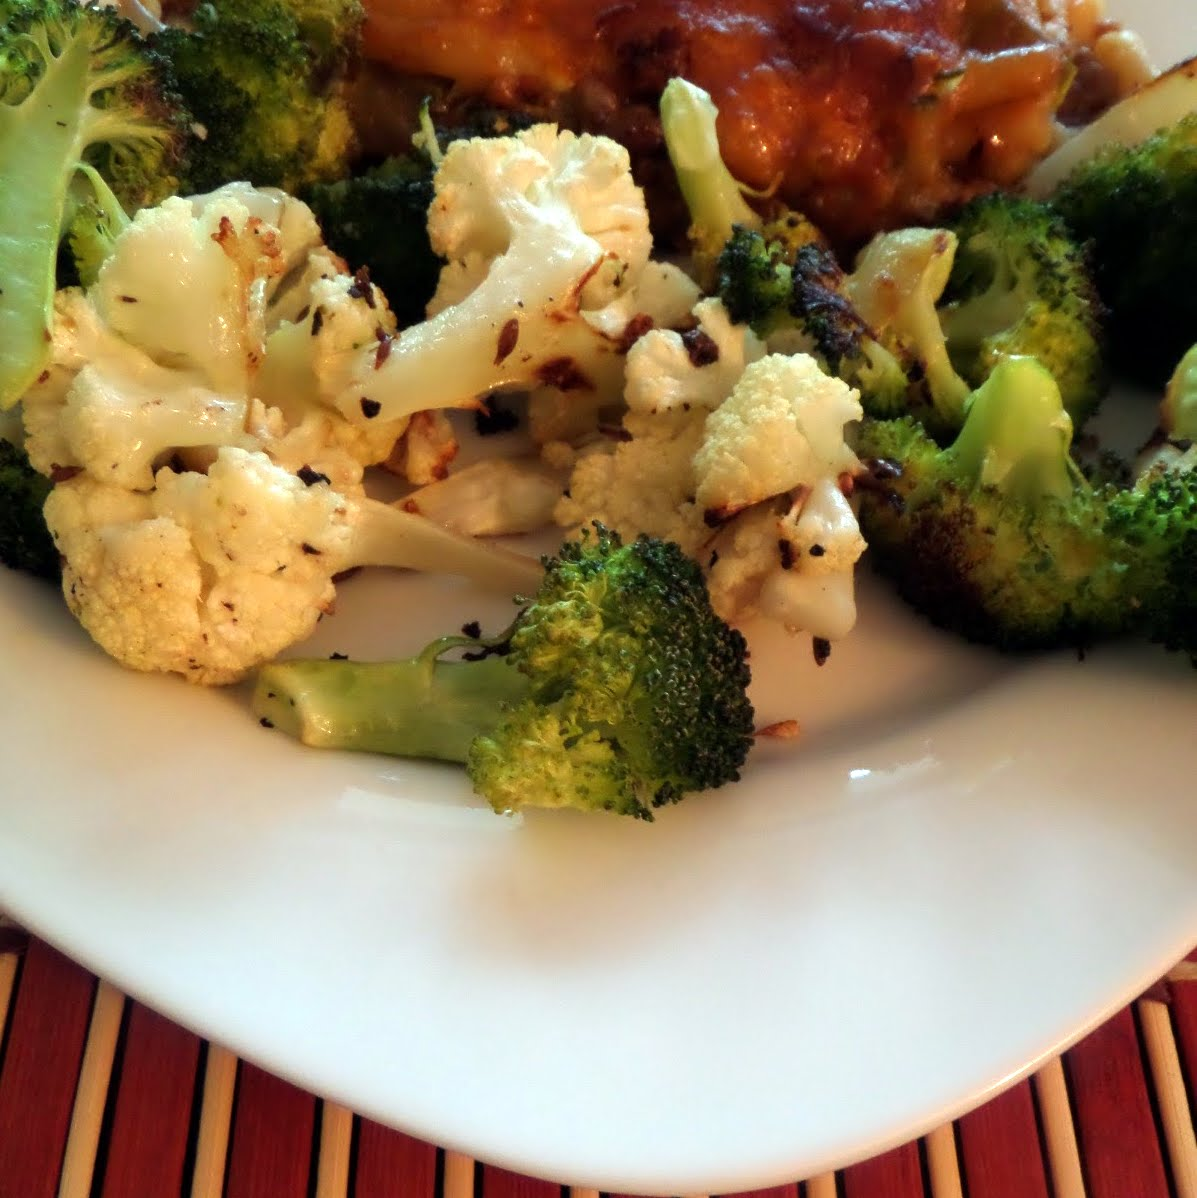 Cumined Cauliflower and Broccoli: A simple vegetable side dish of roasted cauliflower and broccoli with cumin seeds.